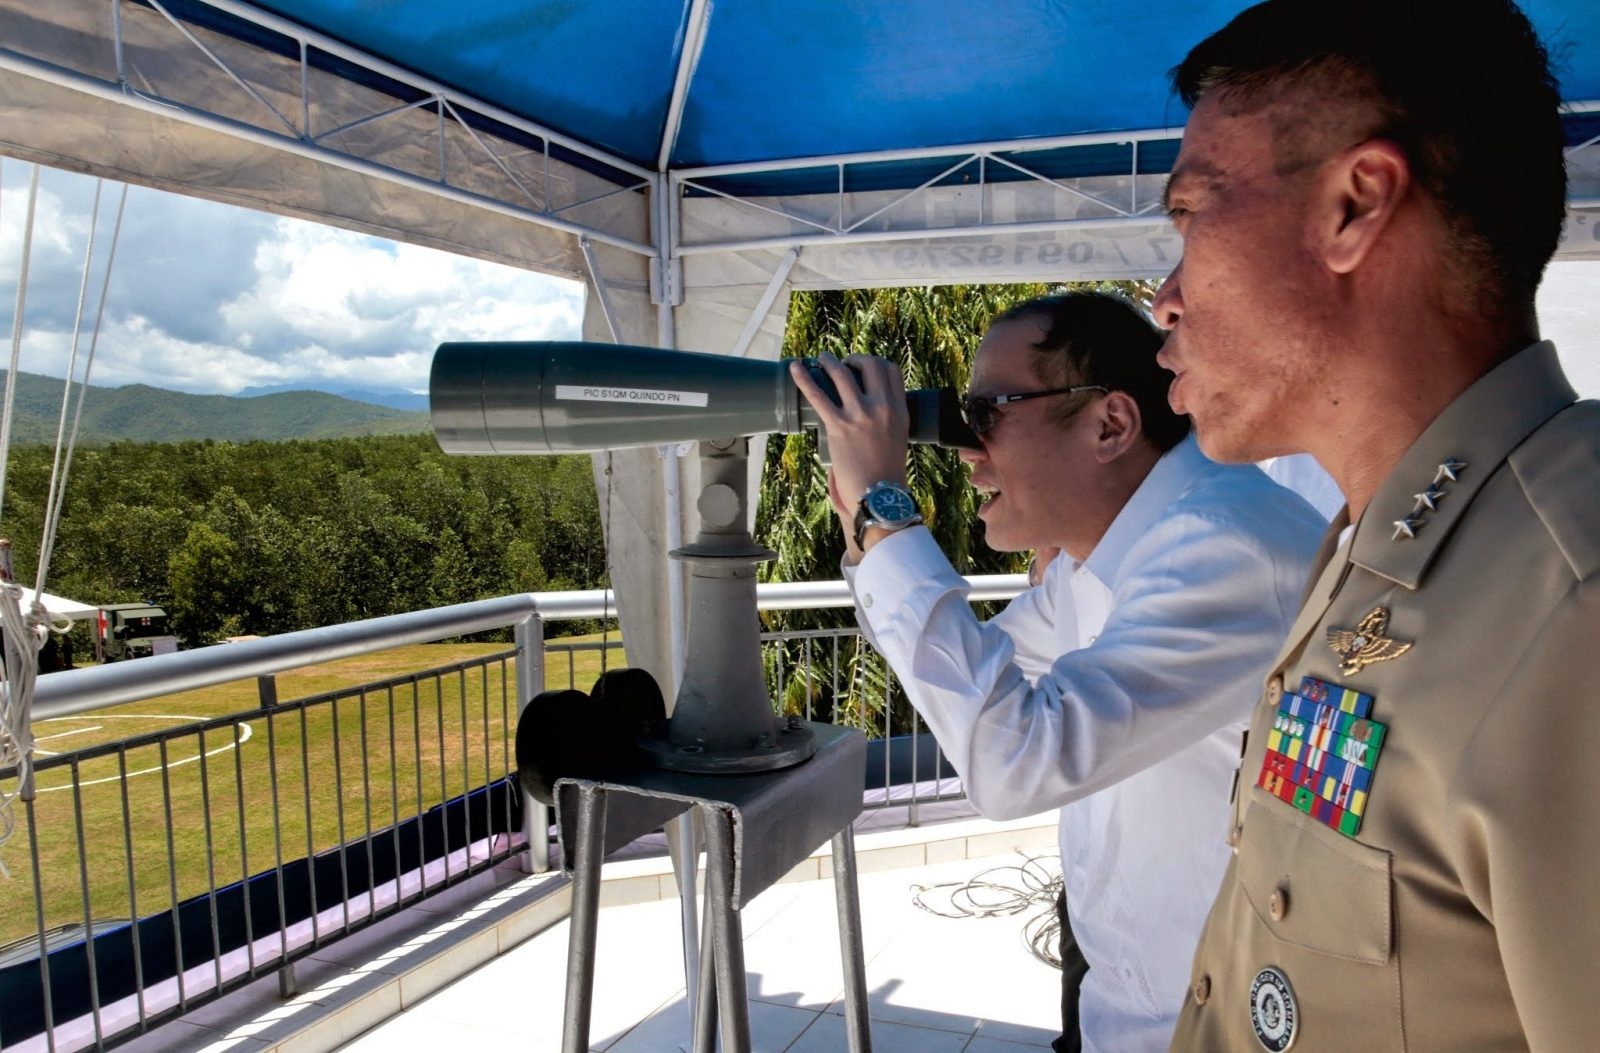 President Benigno S. Aquino III checks out the view of the West Philippine Sea from the administration building of Philippine Navy headquarters in Palawan during the 116th Anniversary of the Philippine Navy at the open grounds of the Naval Forces West naval station, Puerto Princesa City, Palawan on Tuesday (May 27). (Photo by Gil Nartea / Malacañang Photo Bureau)